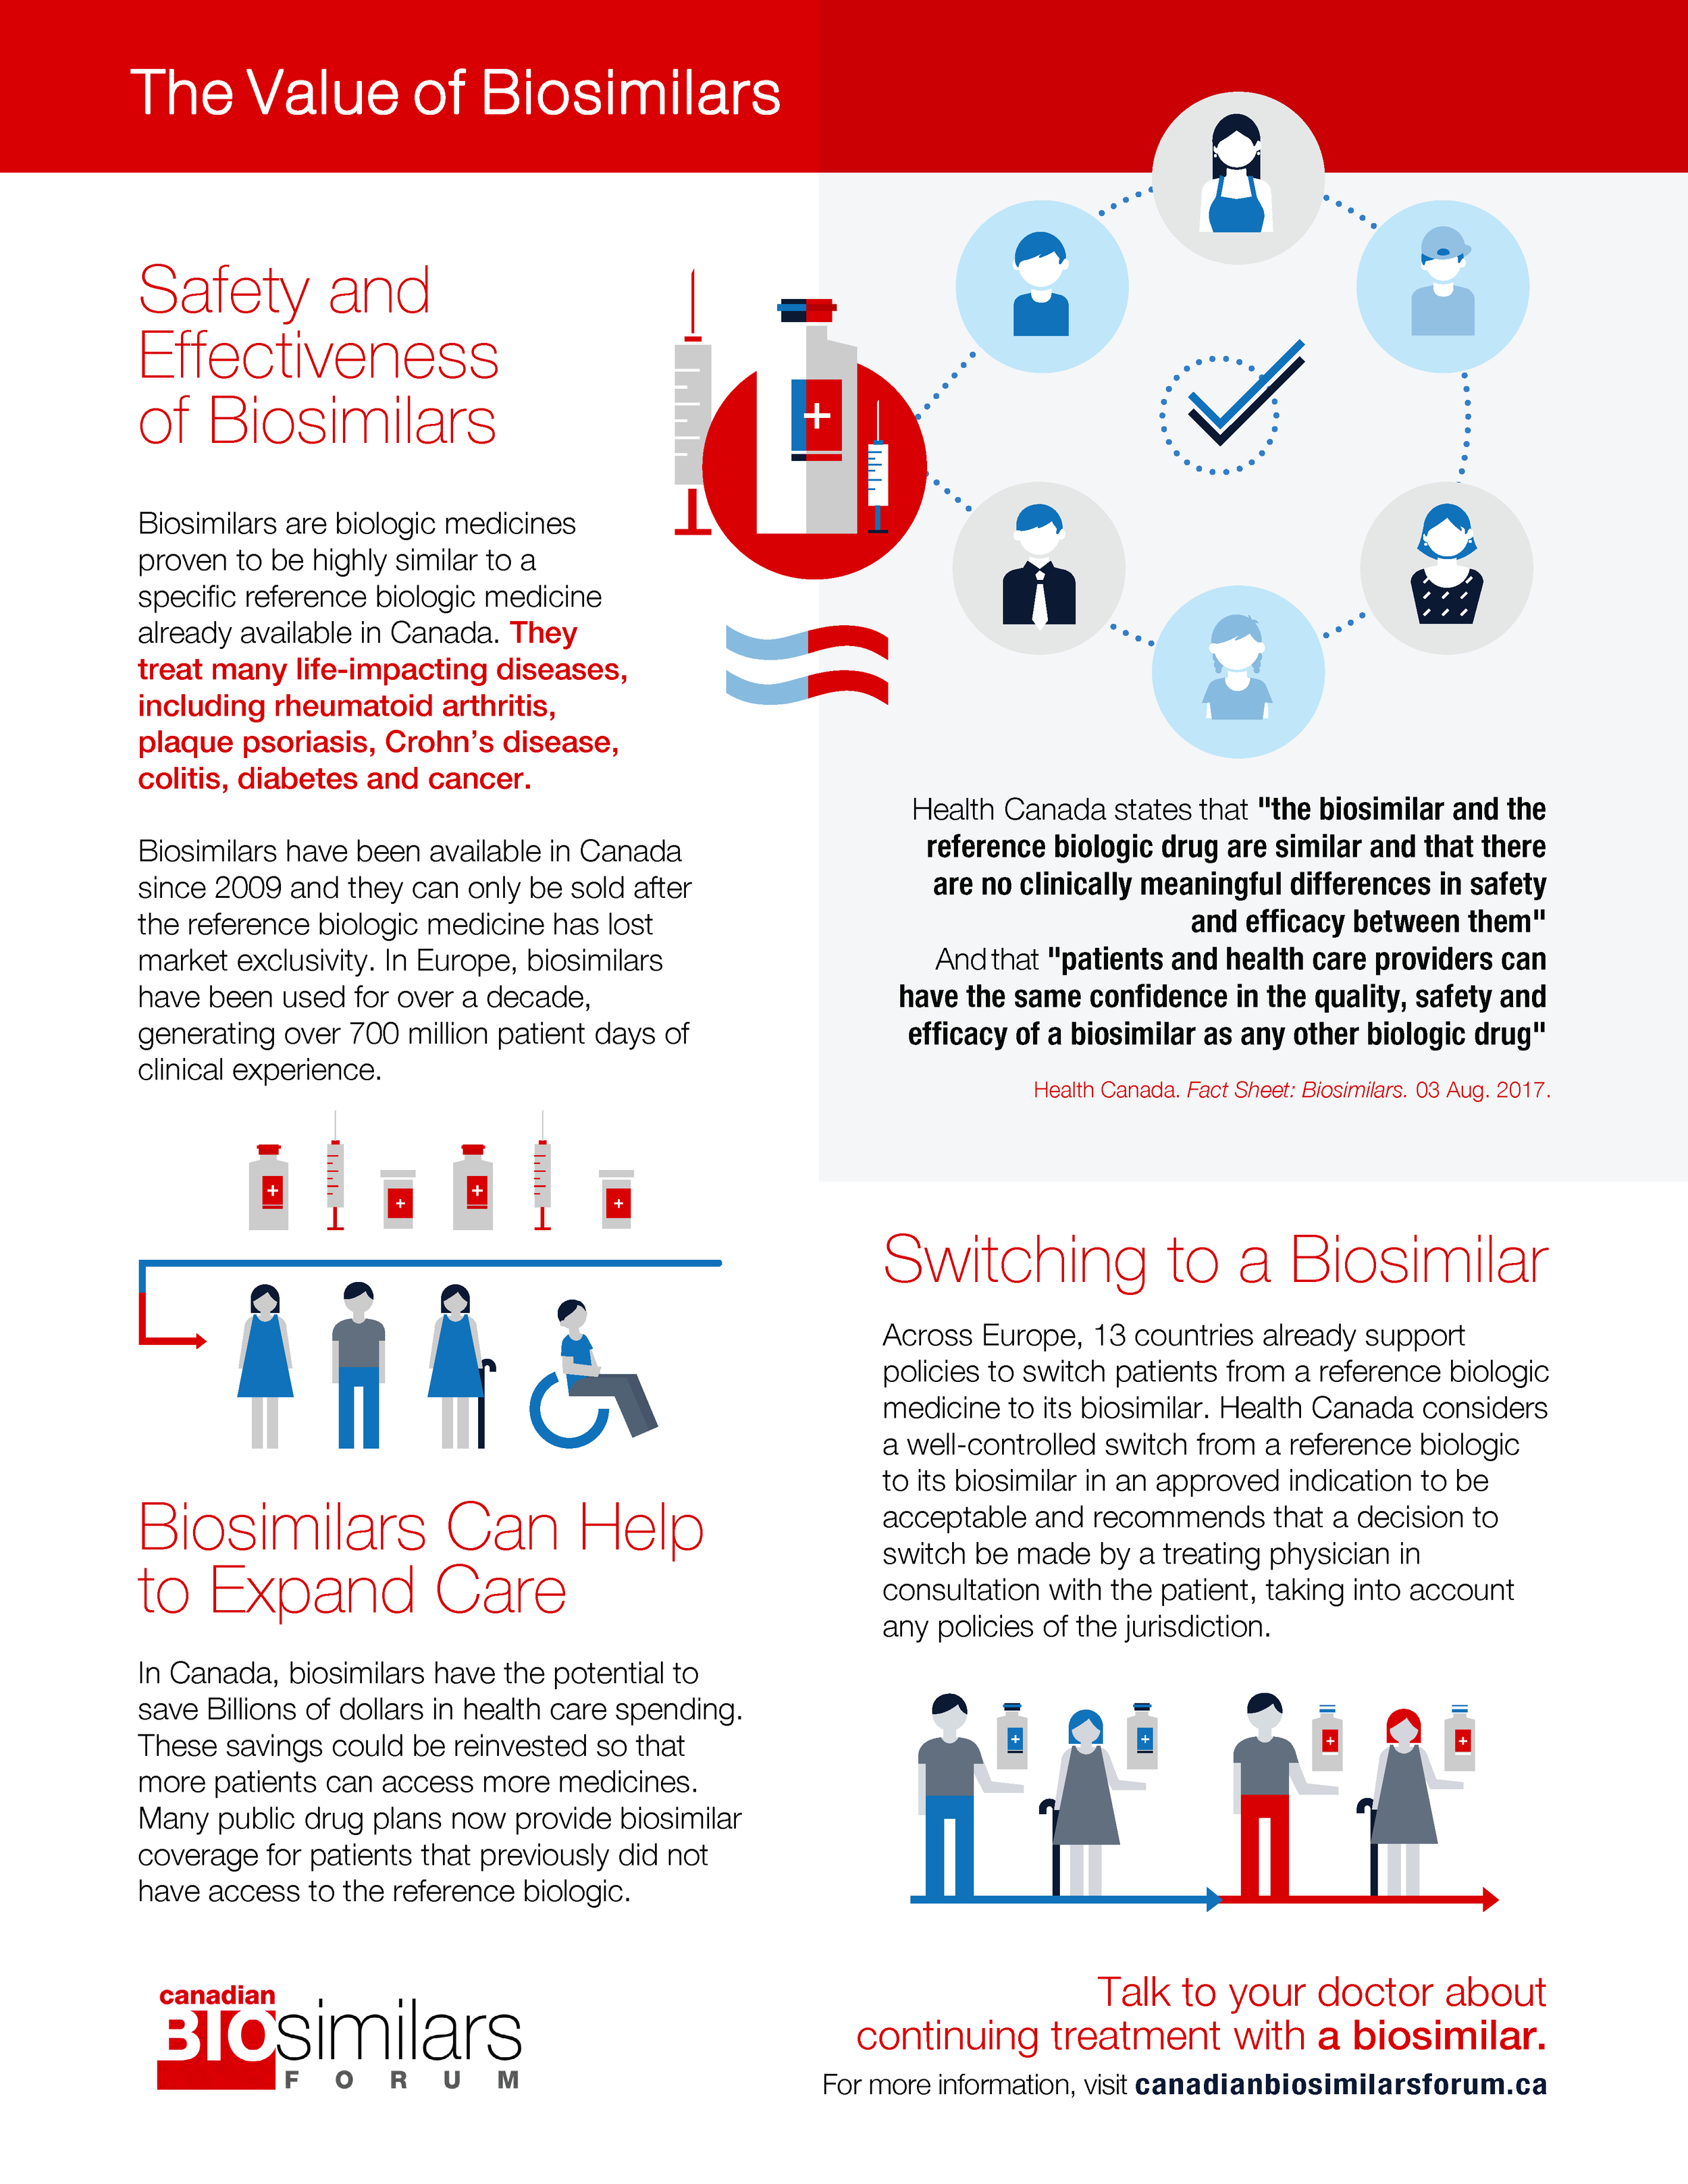 The+Value+of+Biosimilars+Infographic.png